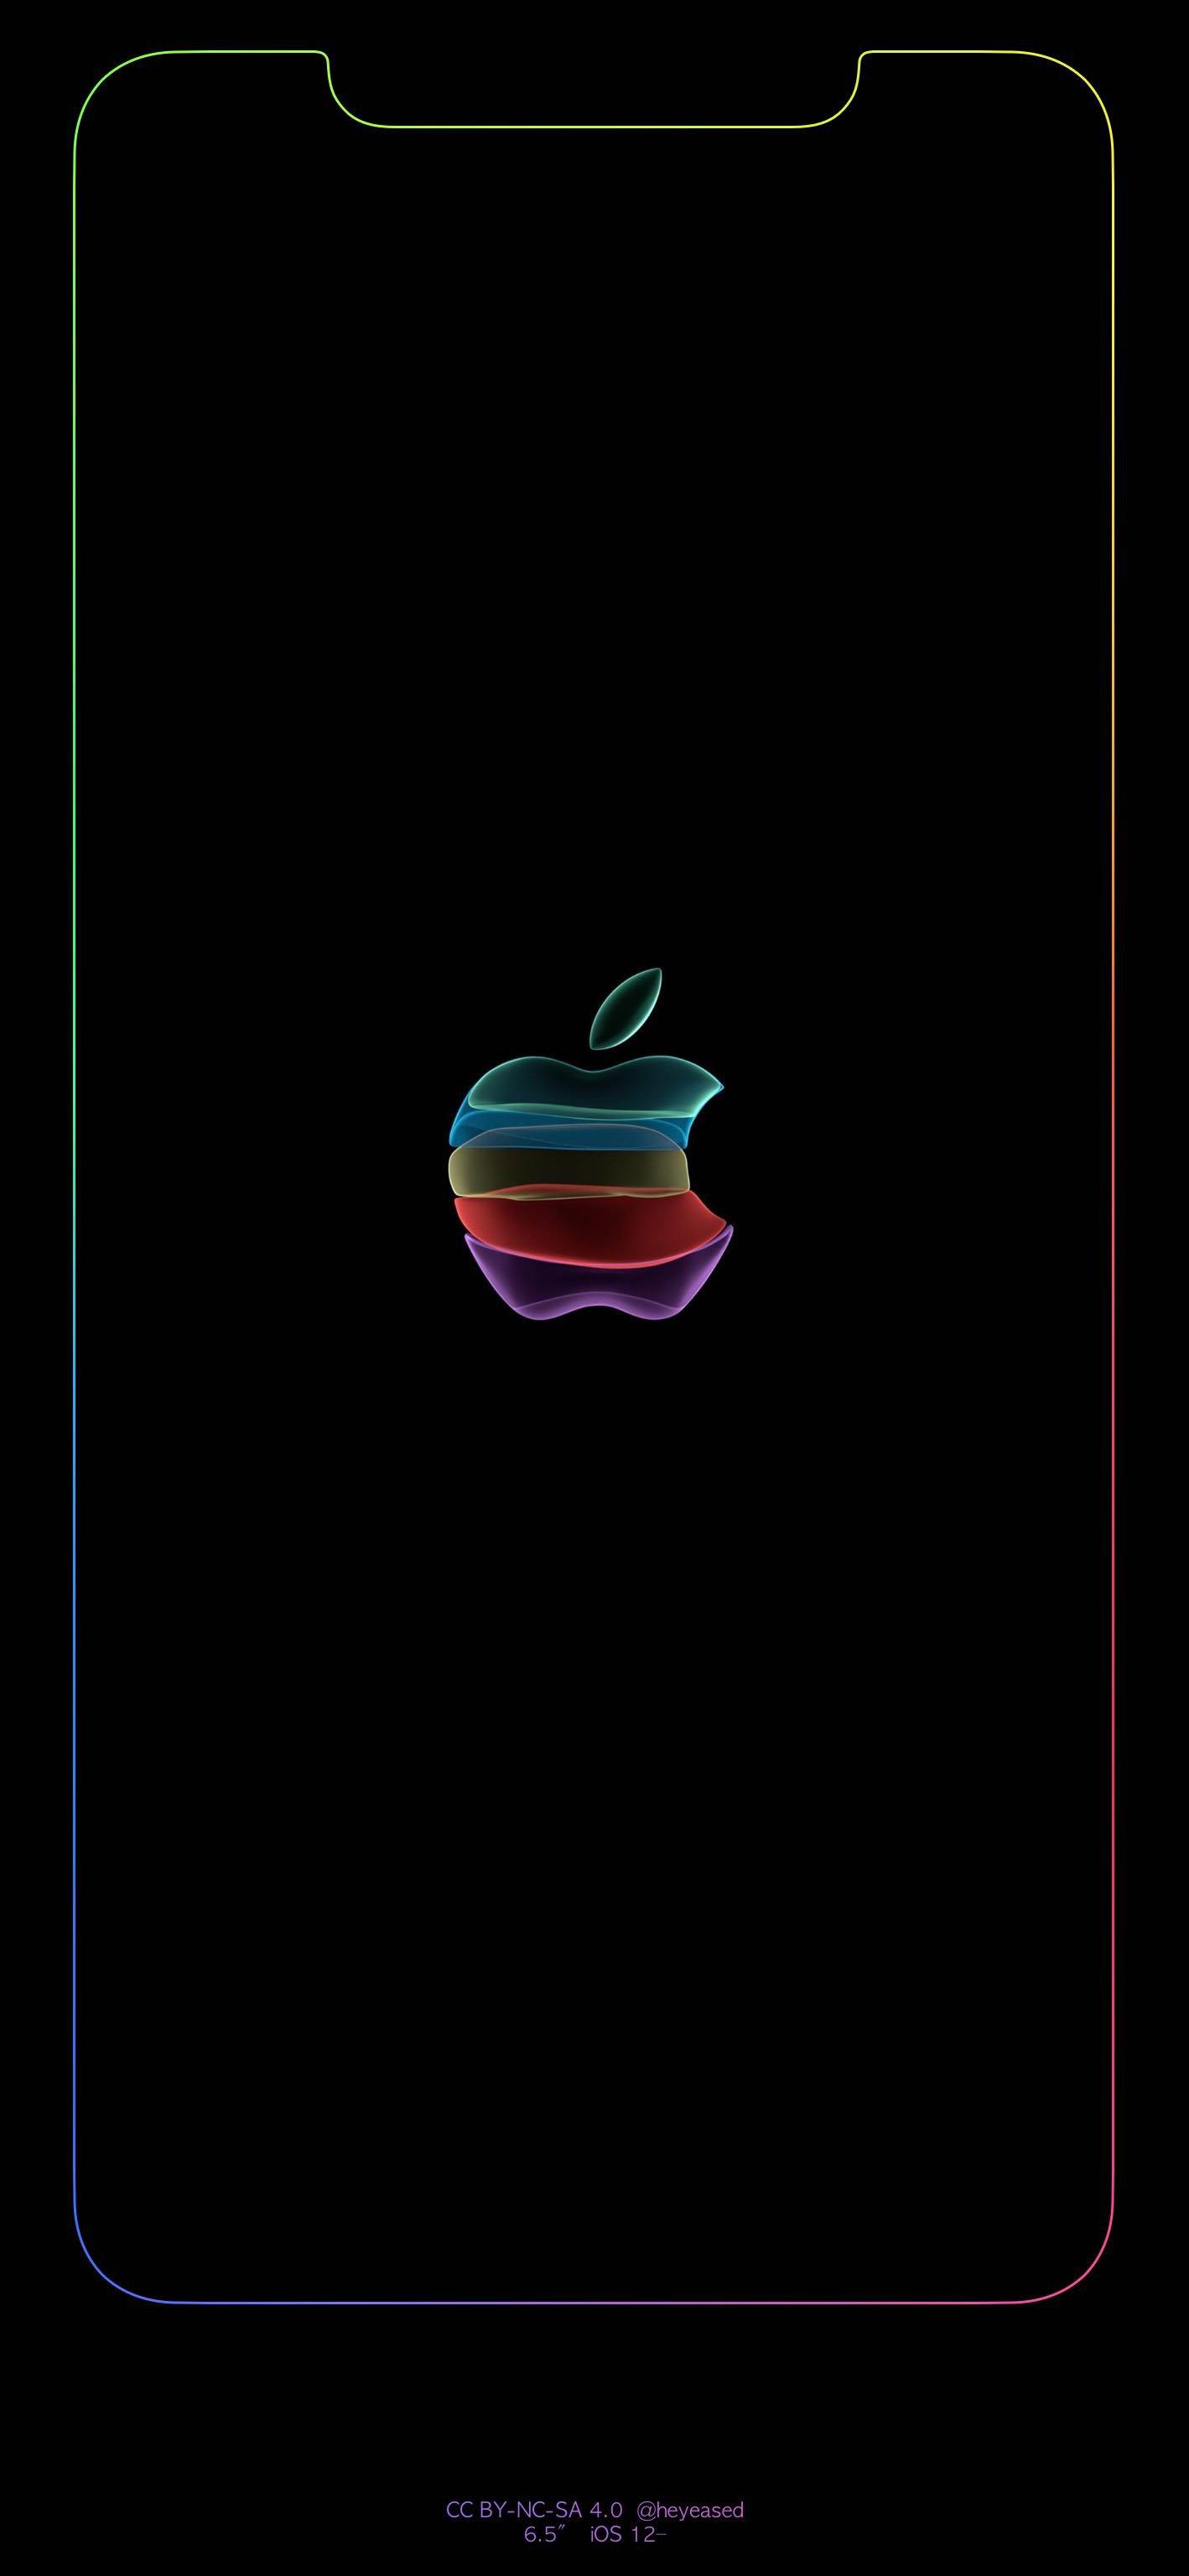 iPhone 11 Pro Oled Wallpapers - Wallpaper Cave